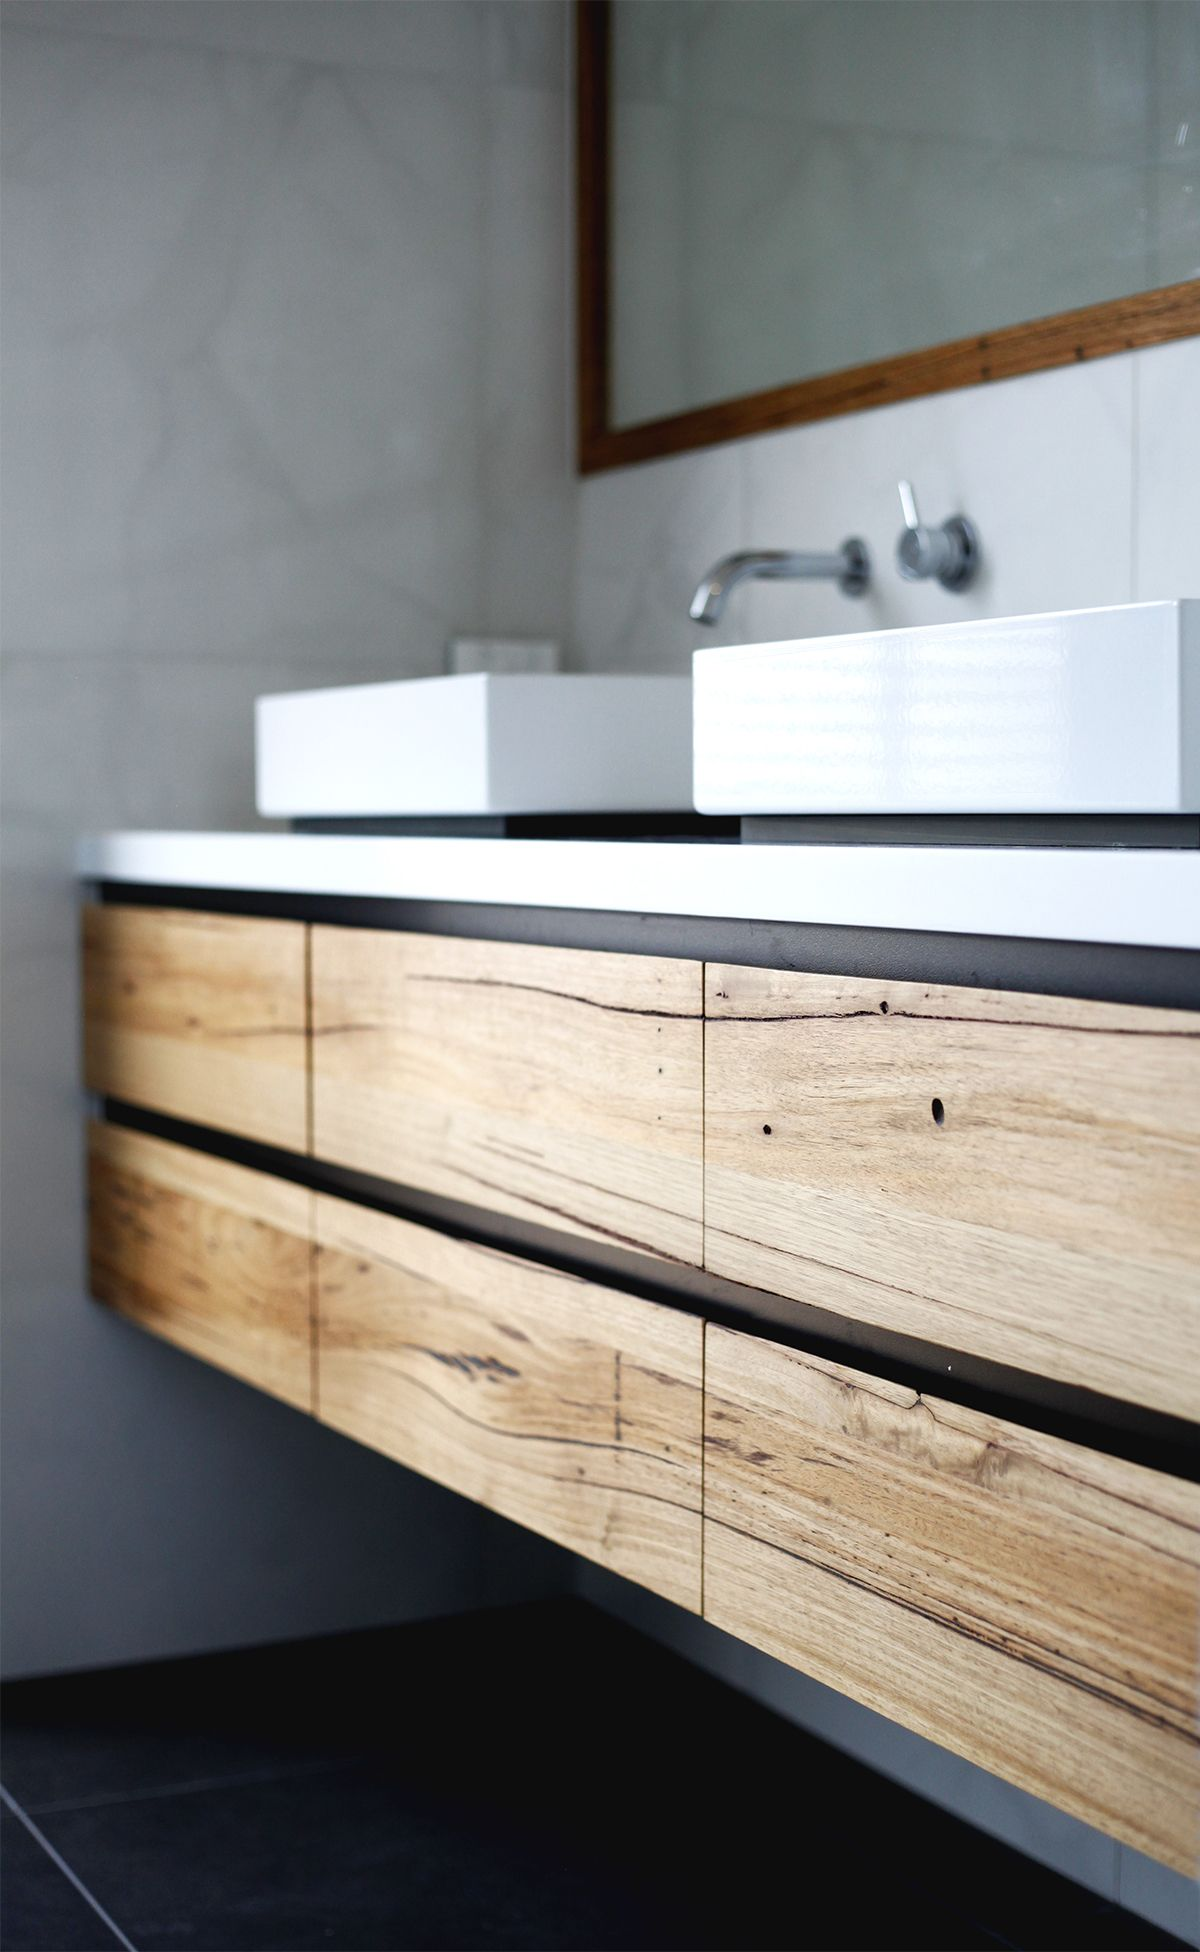 Stone and timber bathroom vanity. The Tathra features a